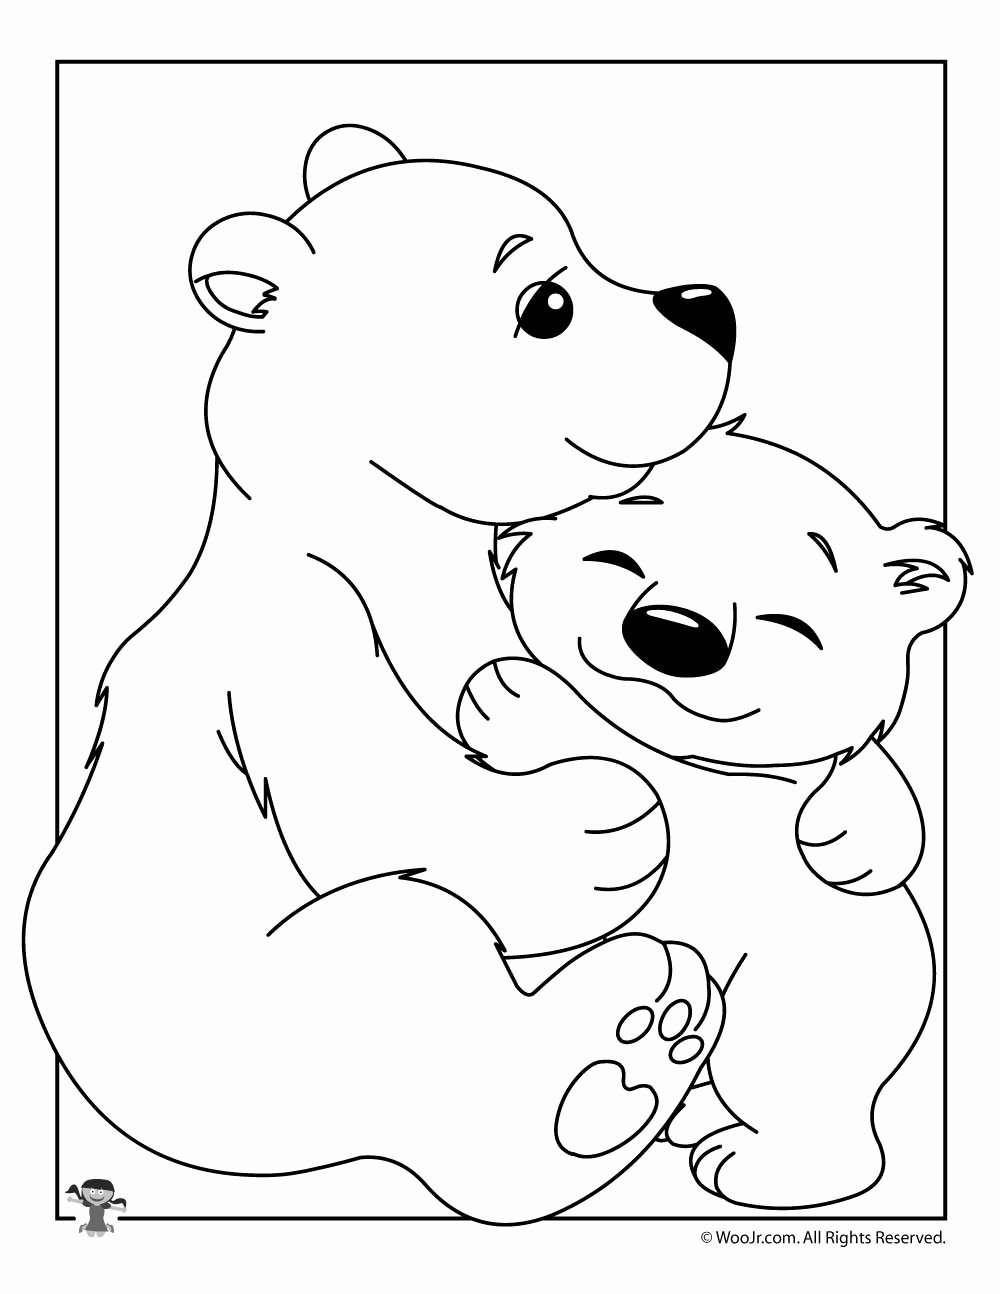 Polar Bear Worksheets for Preschoolers New Baby Polar Bear Coloring Sheet Woo Jr Kids Activities Mom